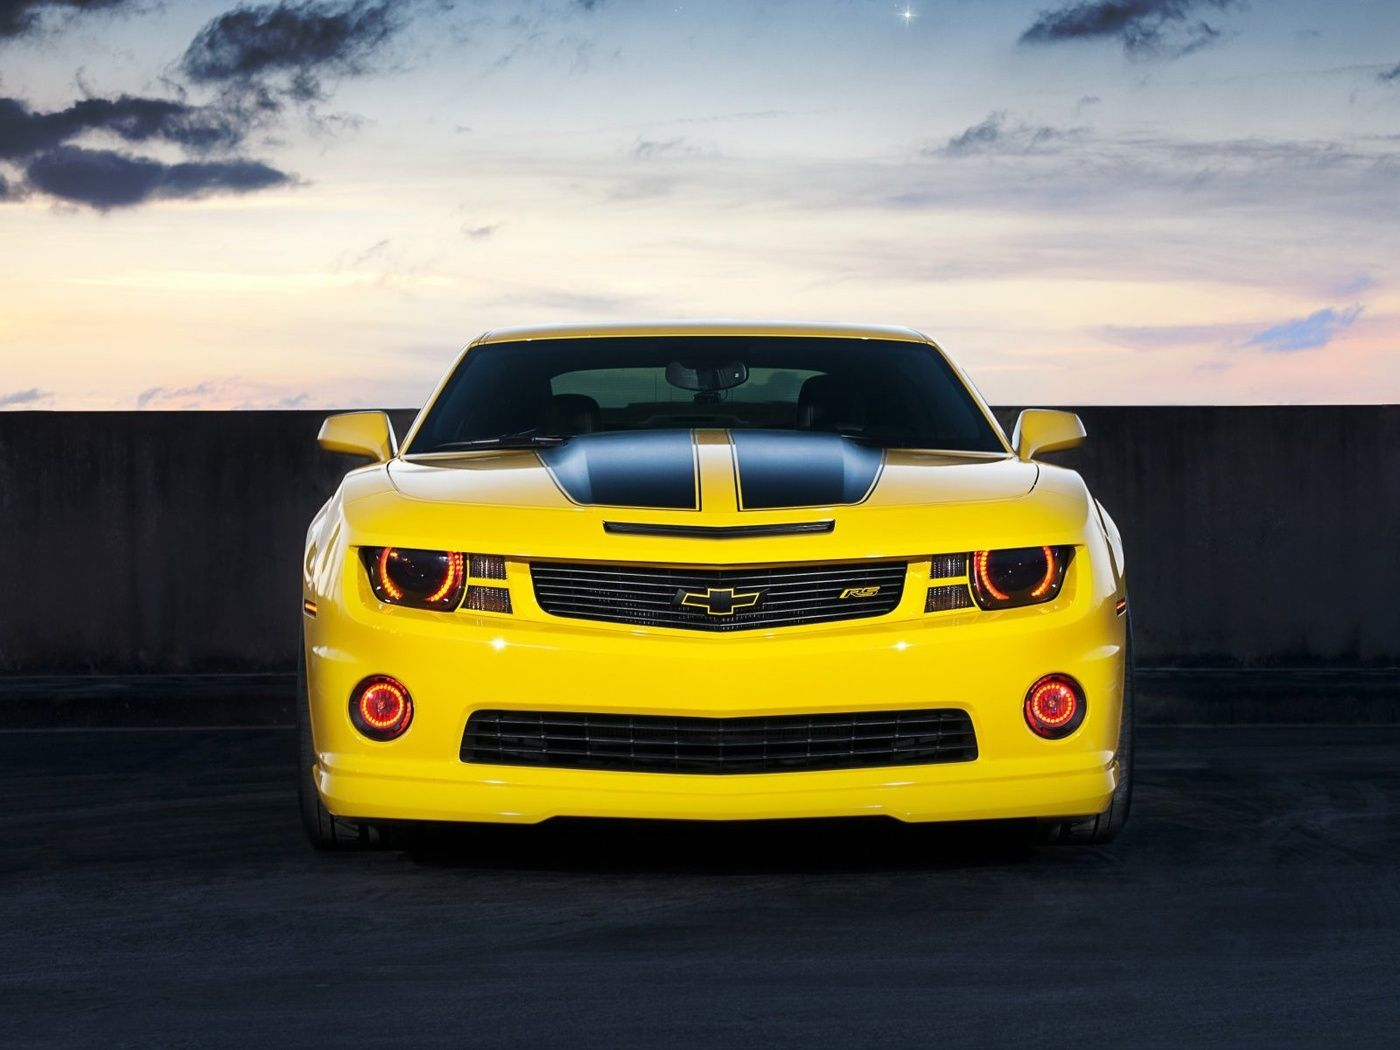 Download Wallpaper Chevrolet Camaro Yellow Car 2ss 1400x1050 The Wallpapers Photos With Images Camaro Yellow Camaro Chevrolet Camaro Yellow